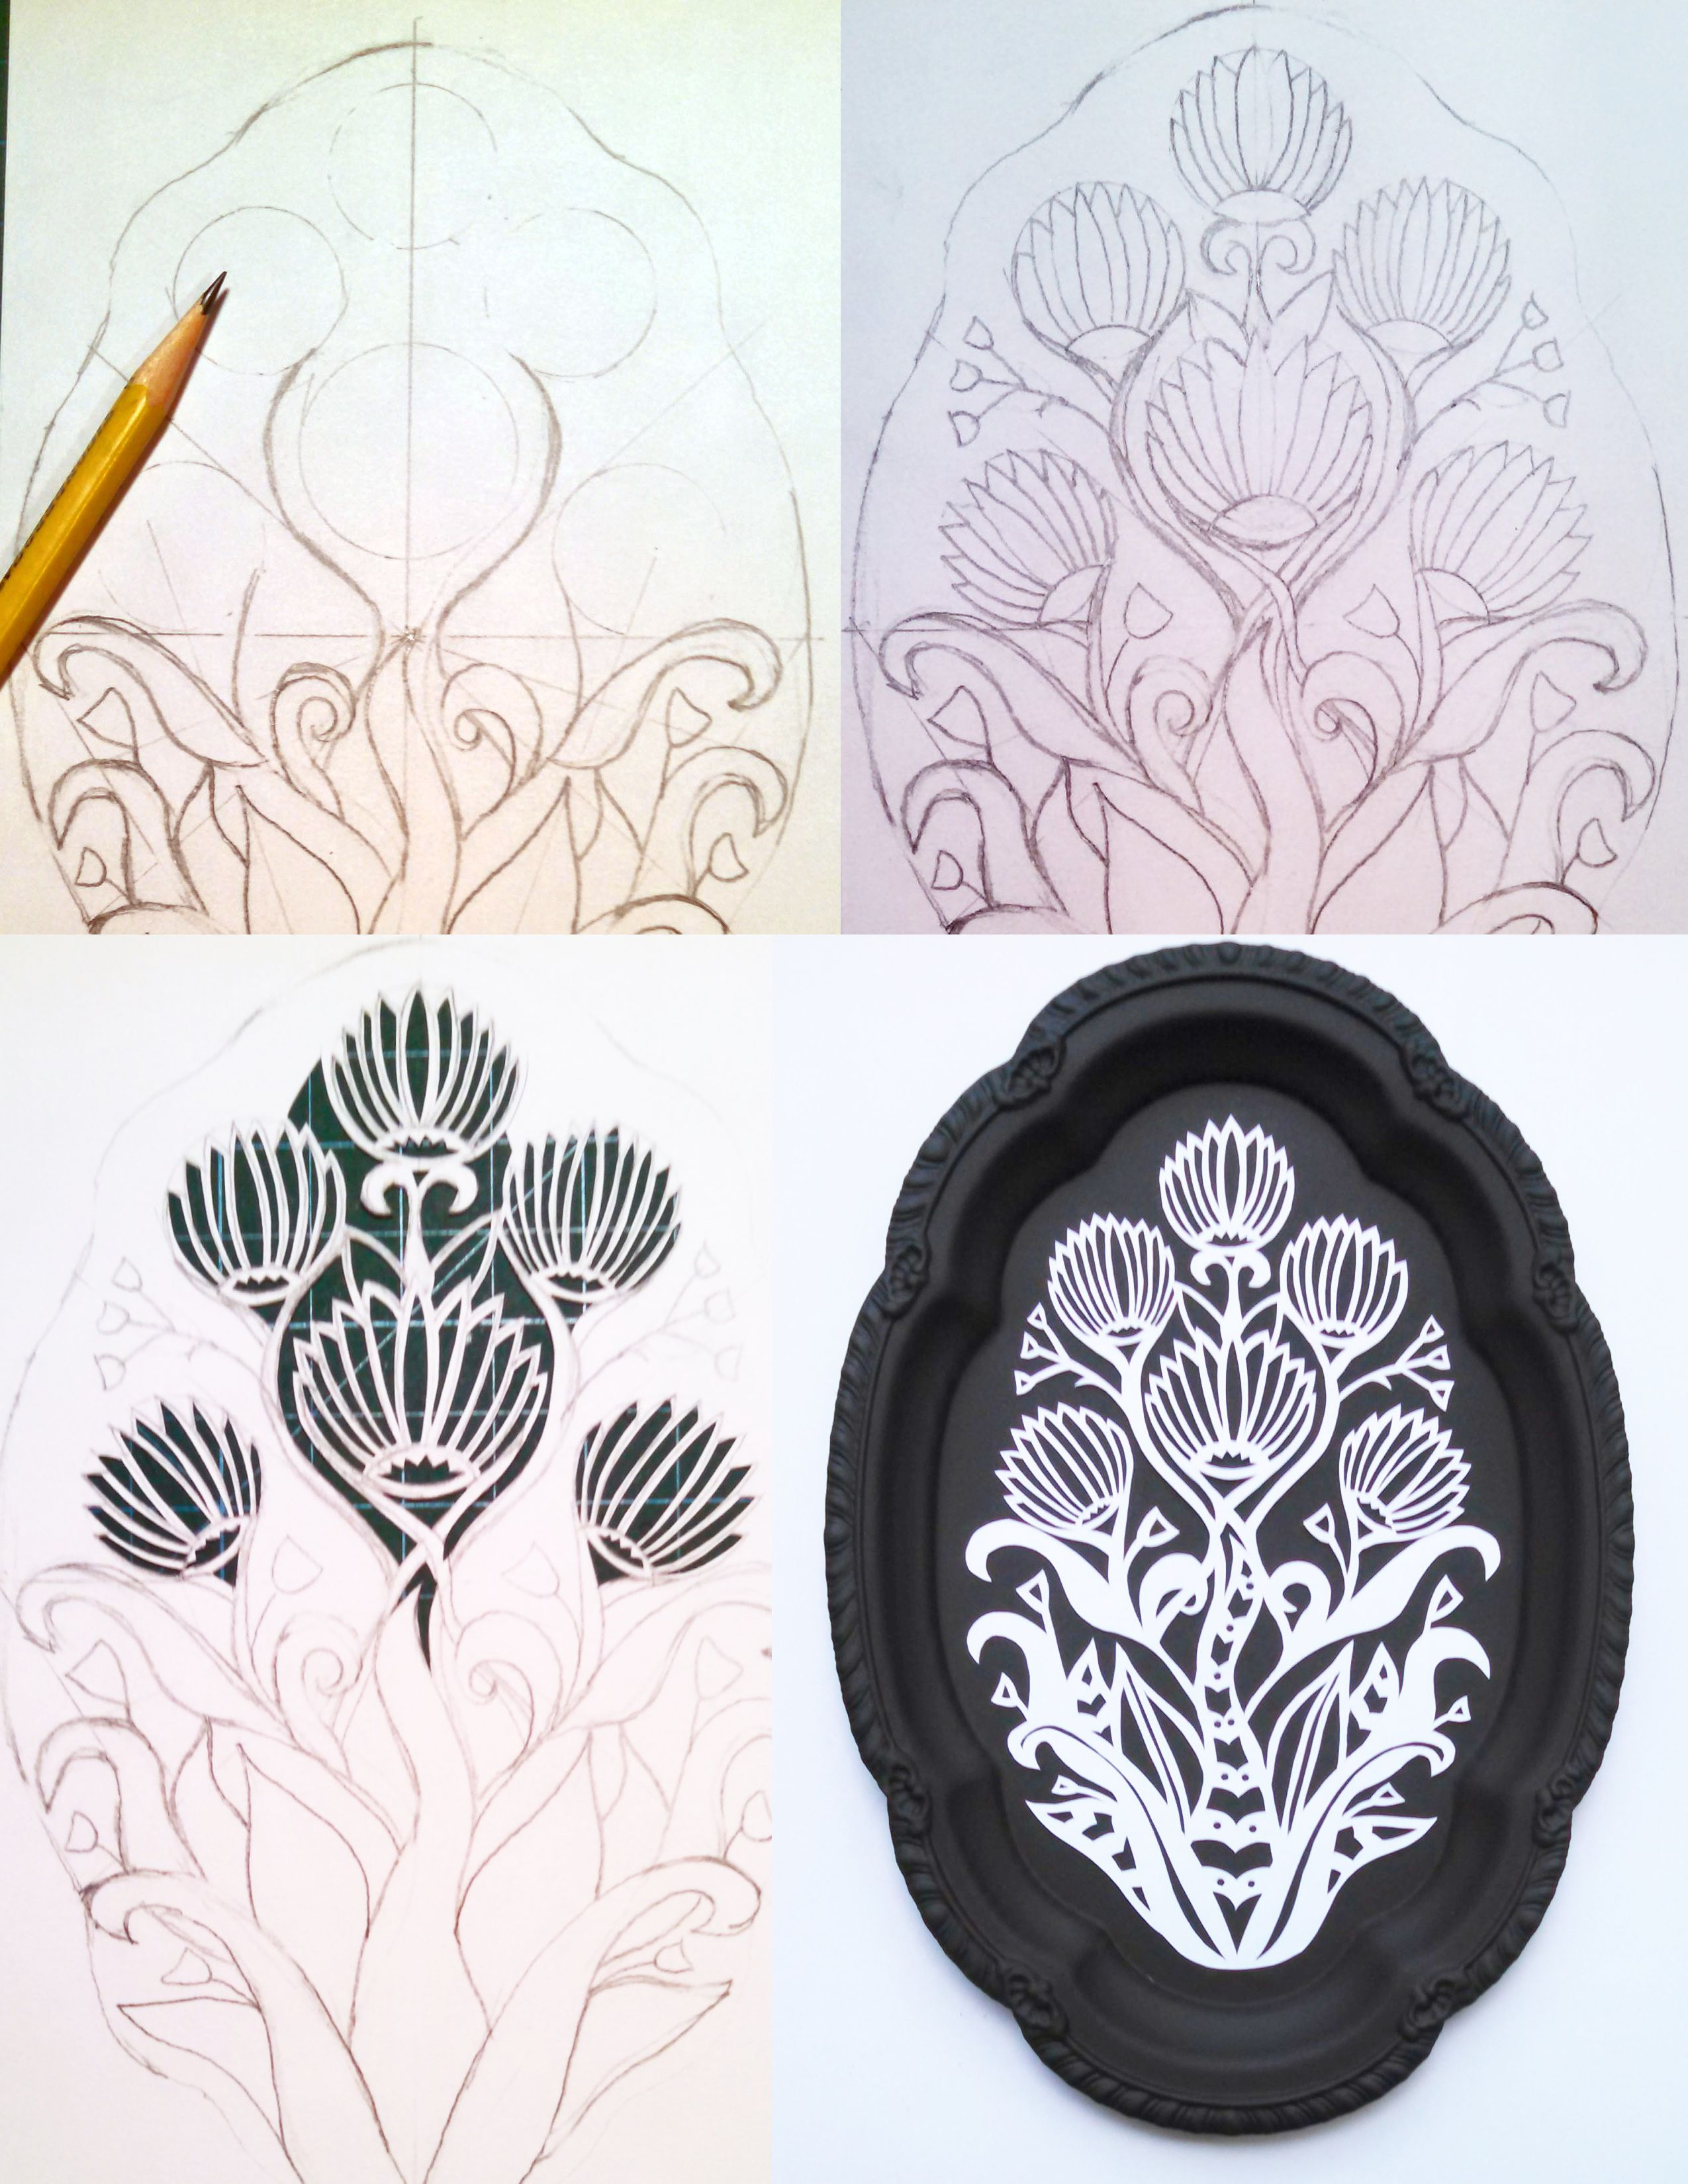 Behind the scenes: process of my latest papercut mounted to an up ...